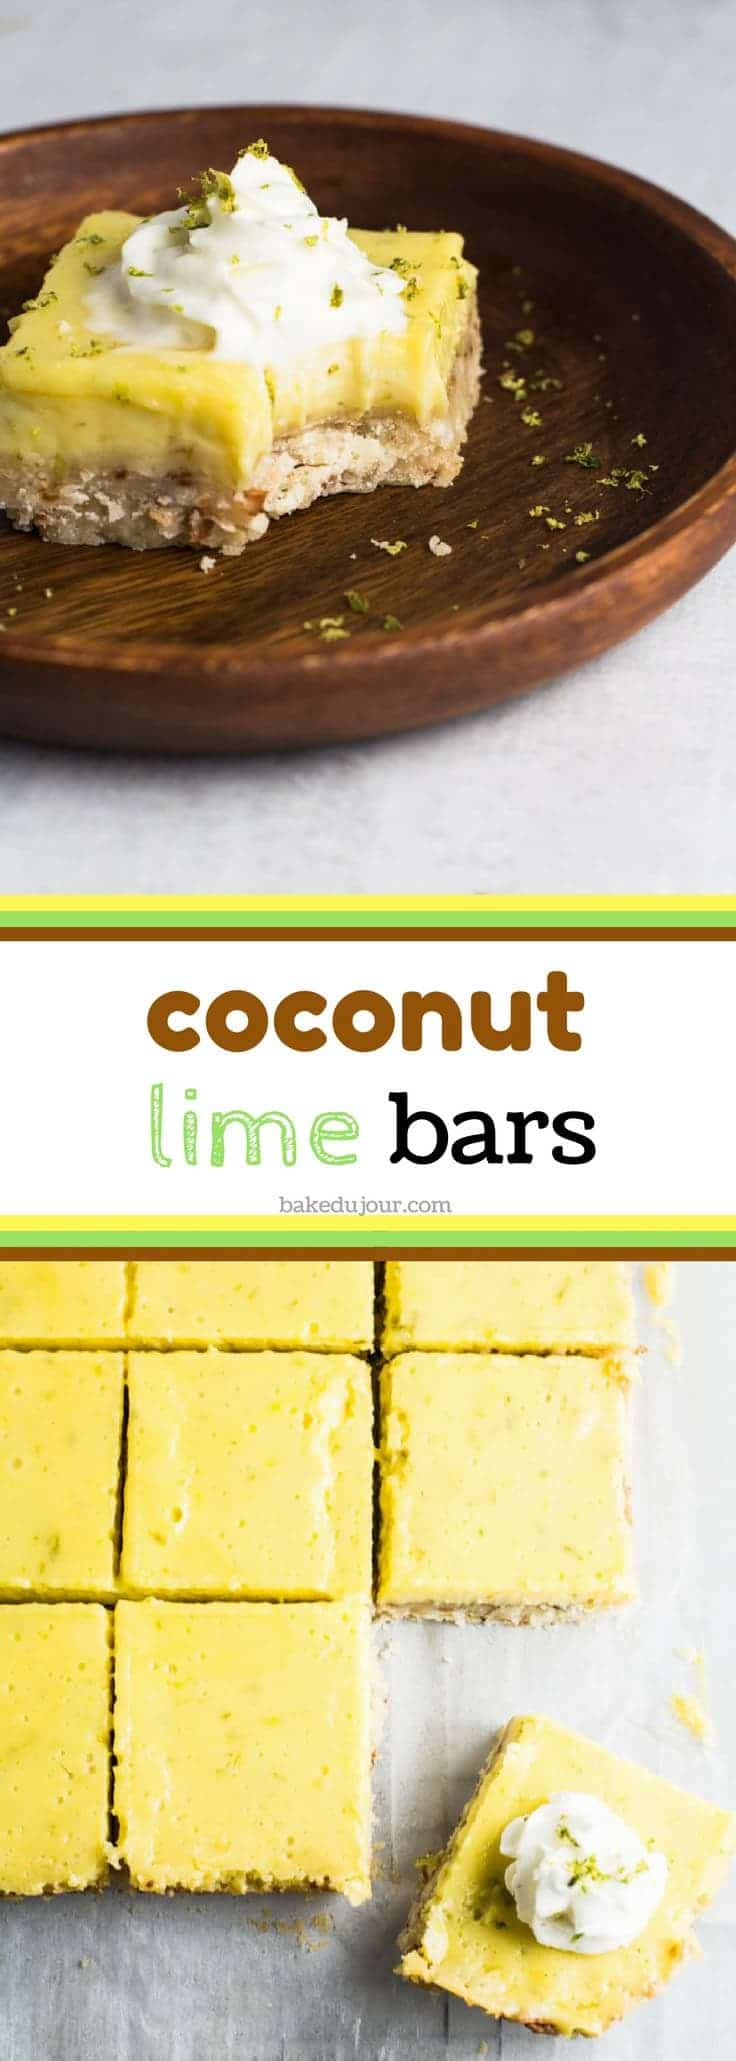 Featuring a coconut shortbread crust and topped with a smooth lime filling, you'll want to make these Coconut Lime Bars your go-to recipe in the summer! #coconutlimebars #summerdessert #summertreats #dessert #limebars #coconutbars #coconutandlime | bakedujour.com